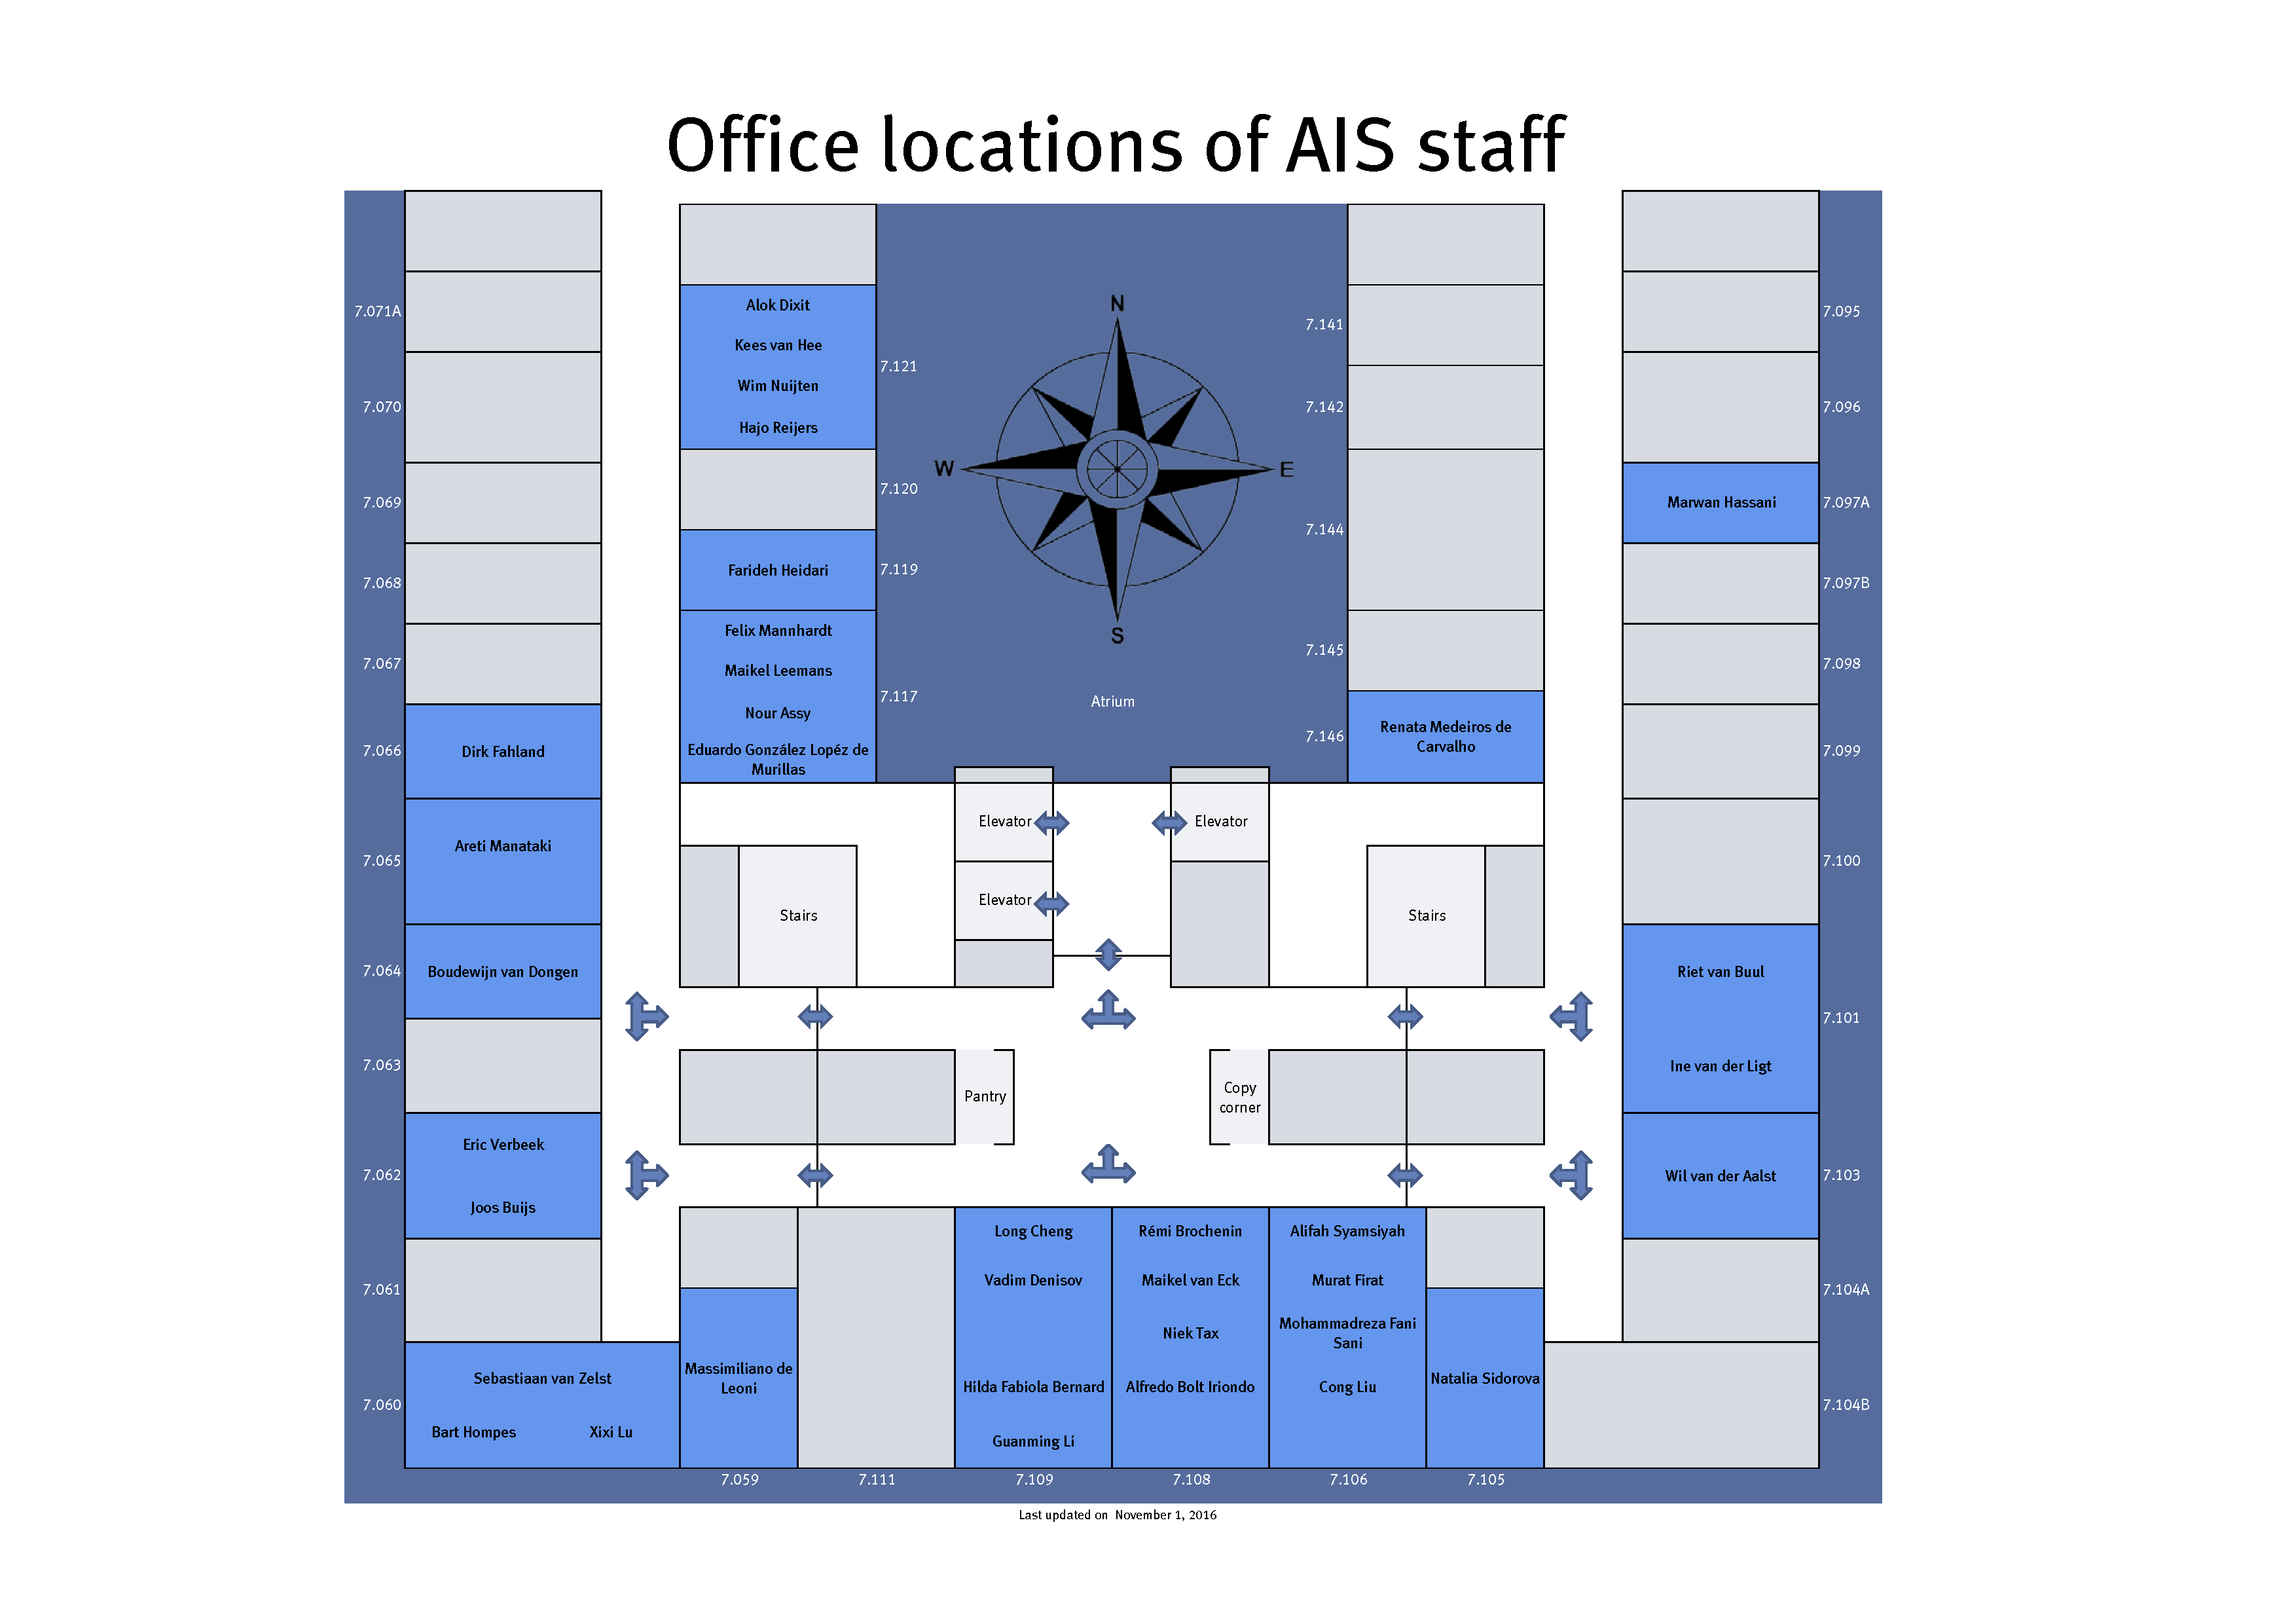 images:offices20161101.png